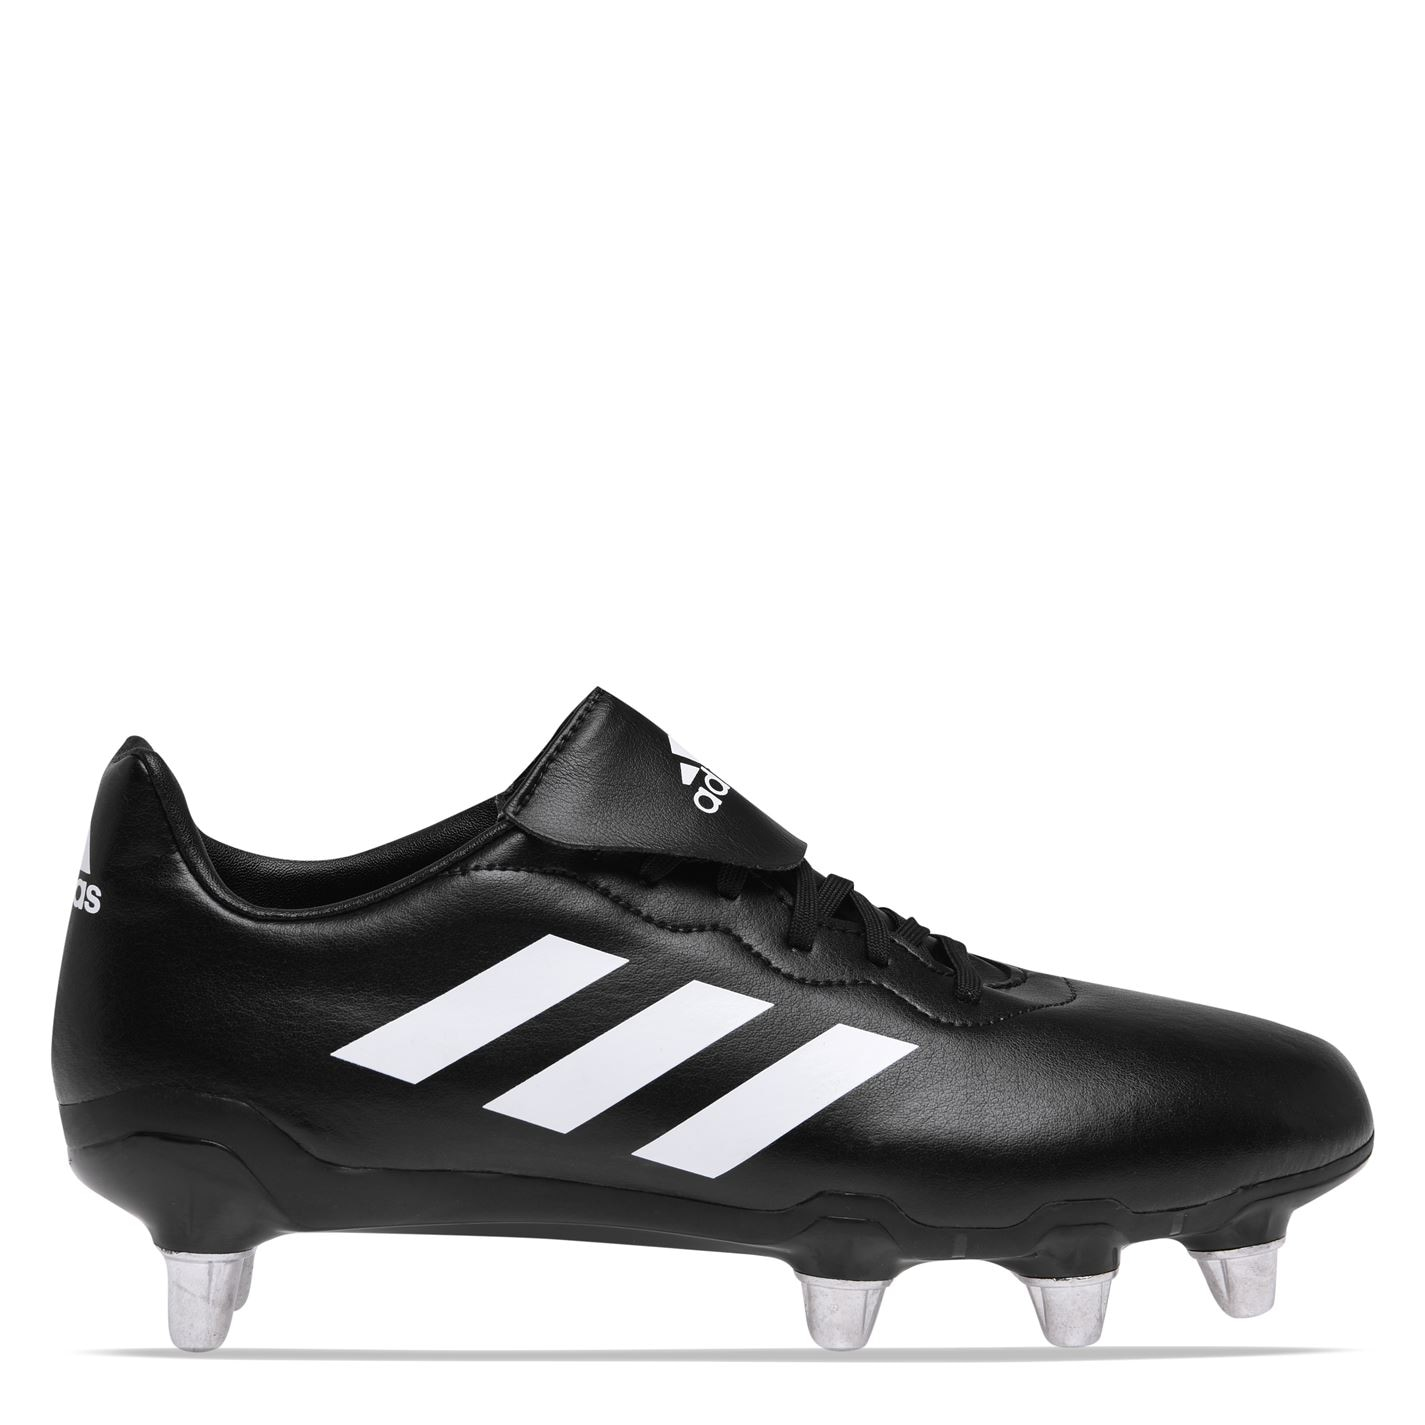 adidas Adidas Rumble Rugby Boots Soft Ground Black/White